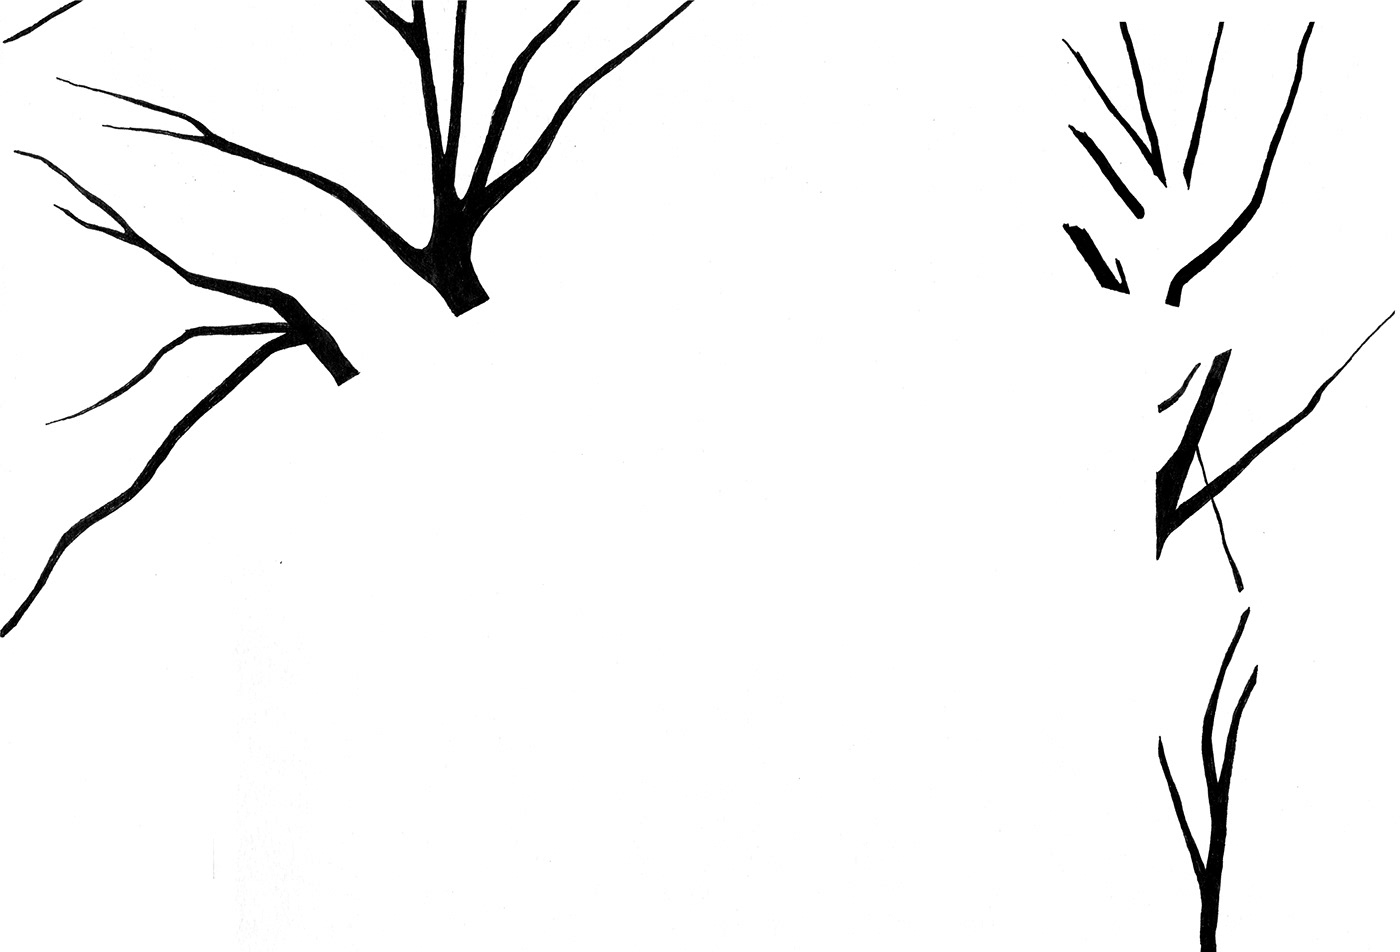 Tree  trees black White negative space pen ink black and white Nature Environmentalist